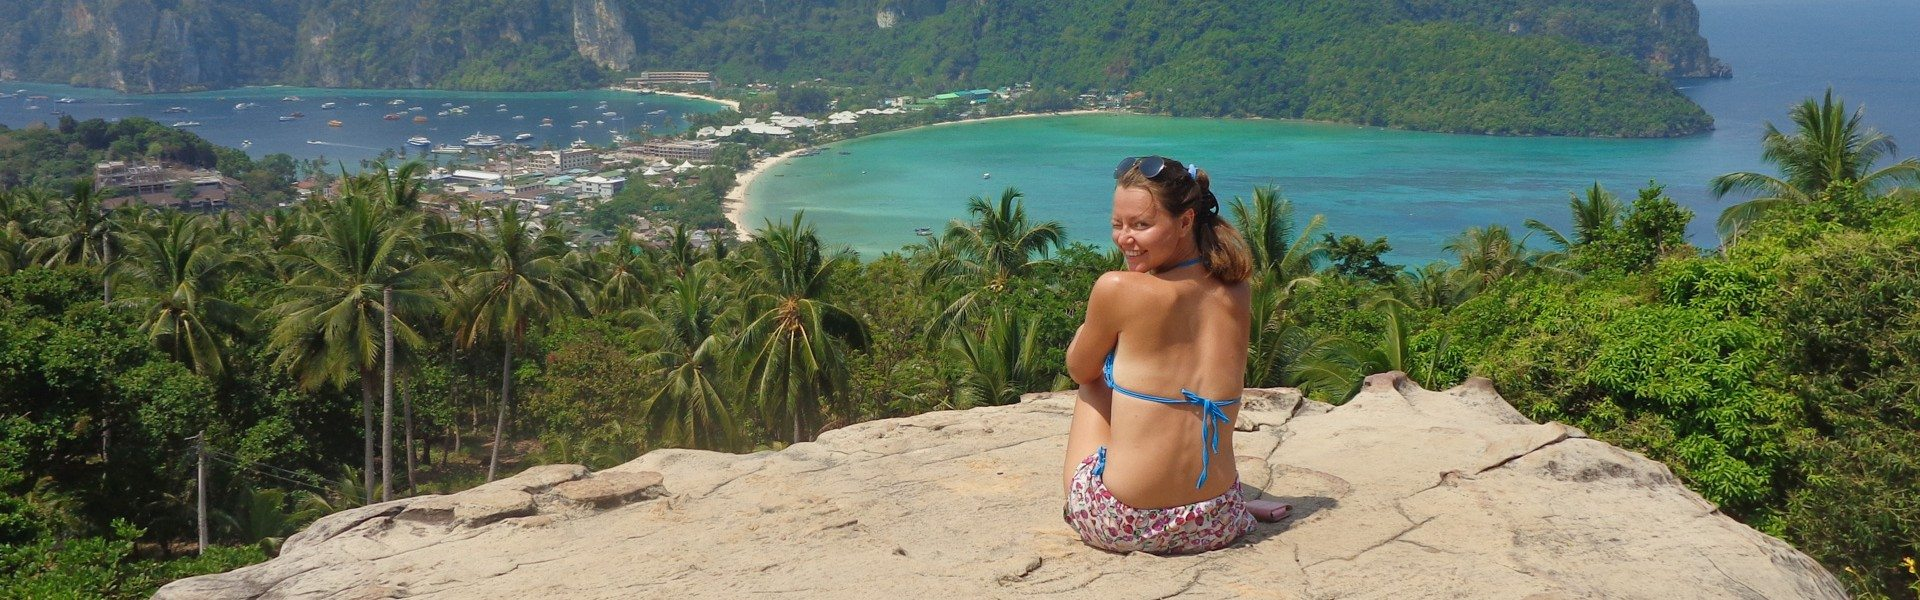 thailand phi phi viewpoint